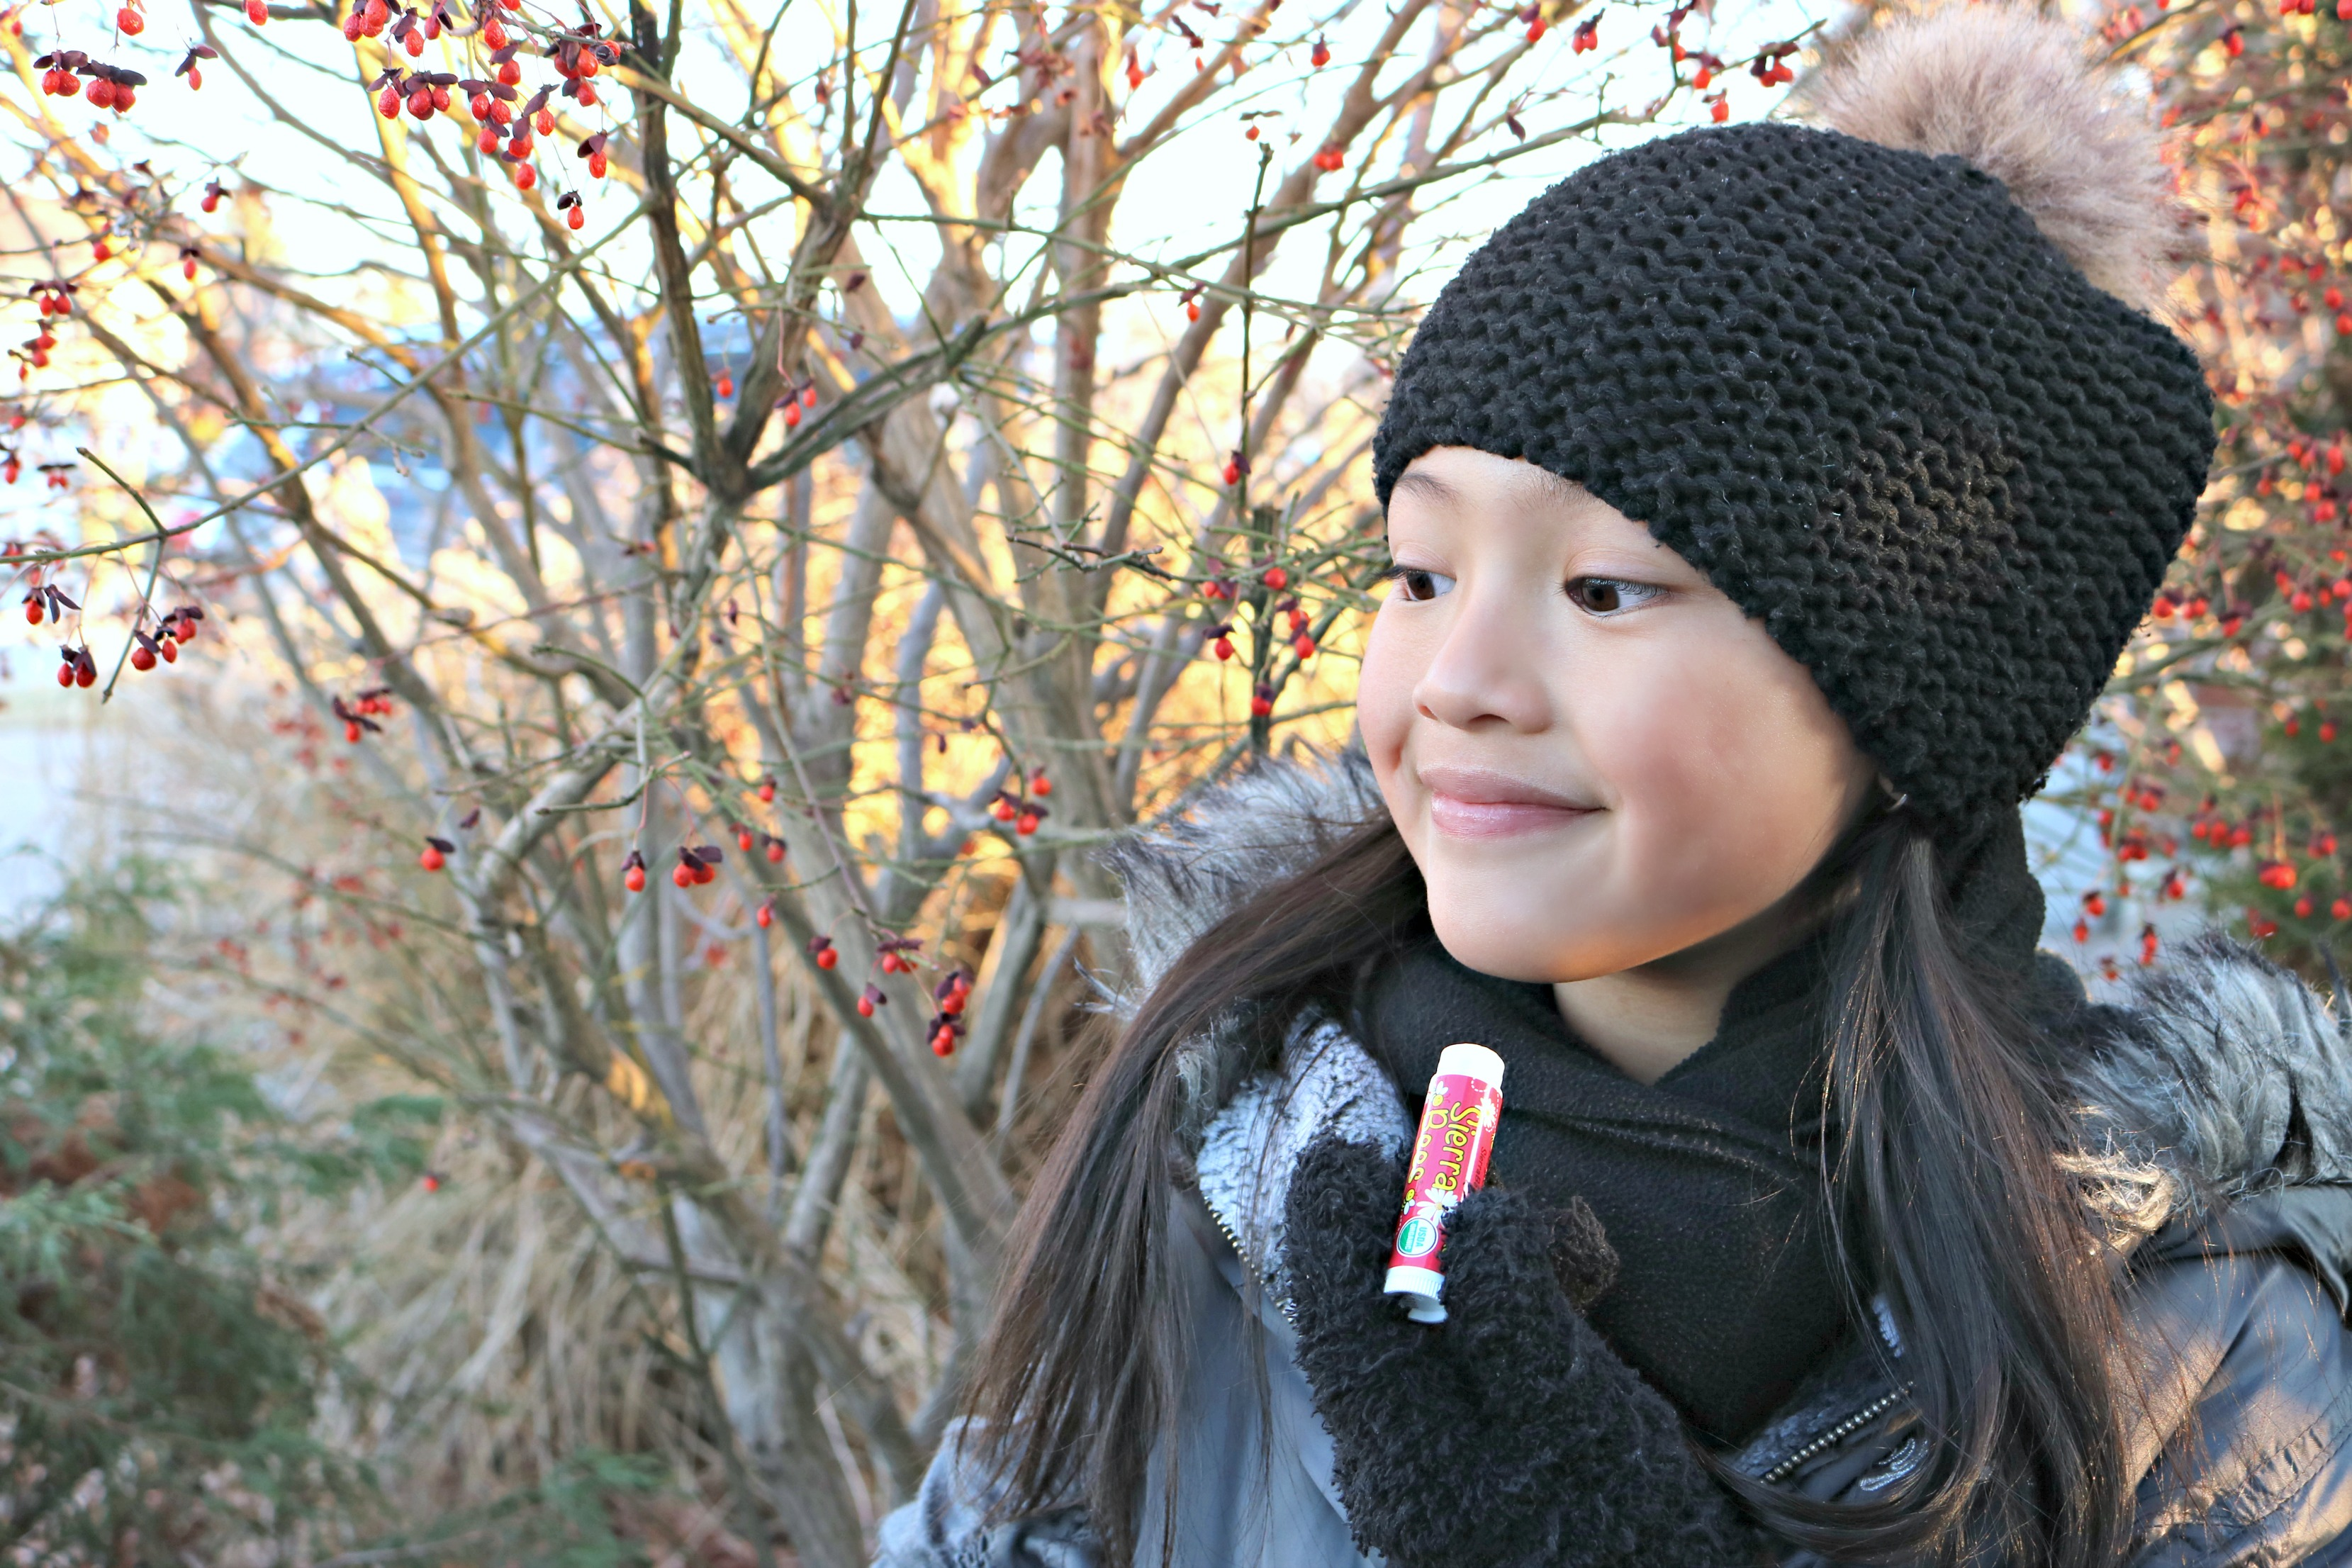 Little girl holds Sierra Bees Organics chap stick.